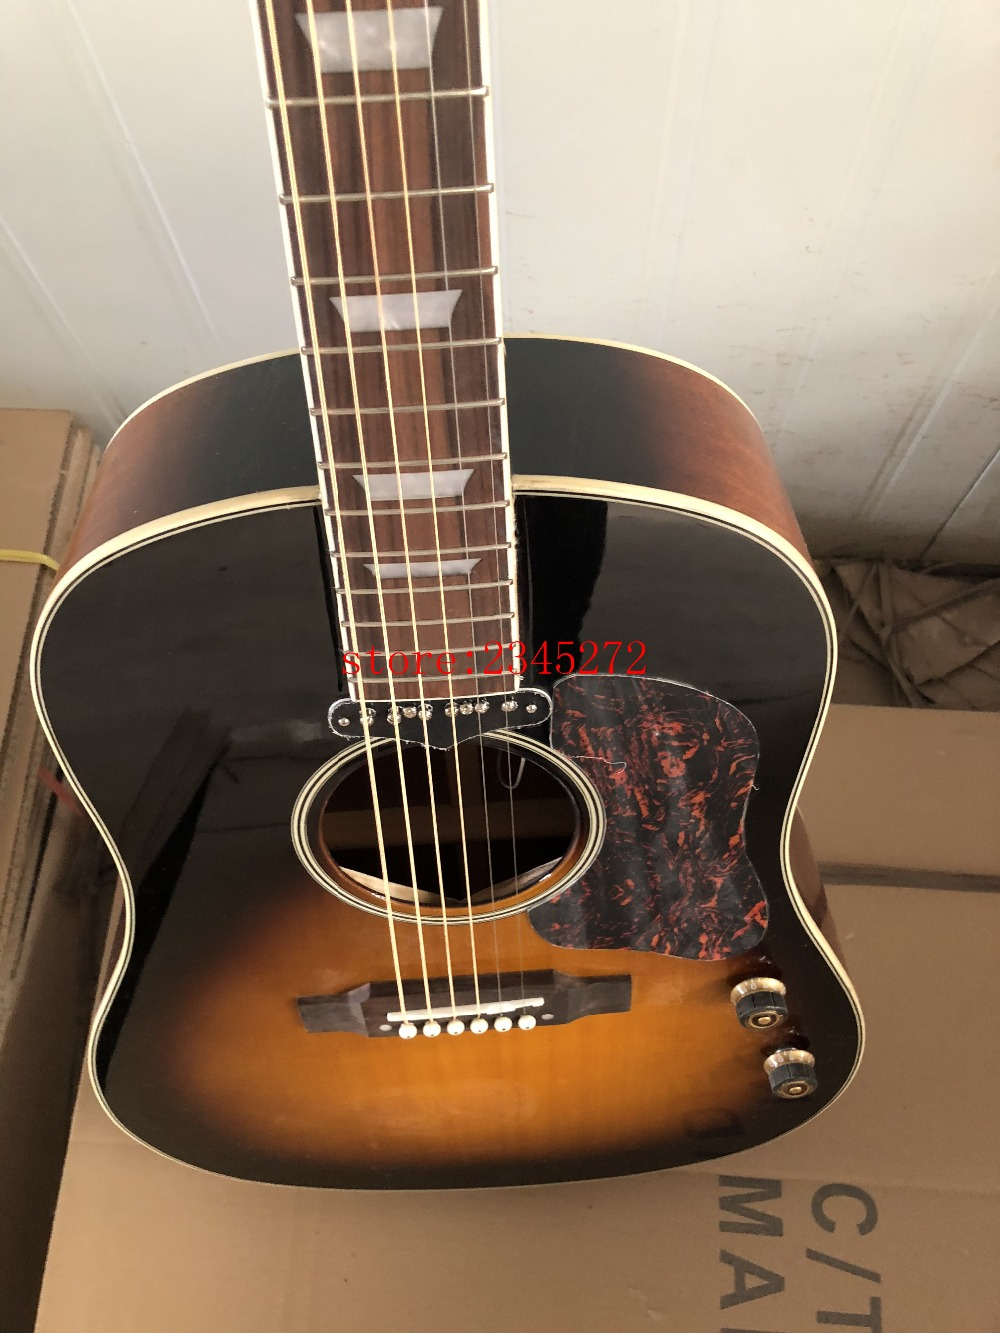 2019 new factory sunset color explosion model Chibson J160 acoustic guitar Original piakup free shipping